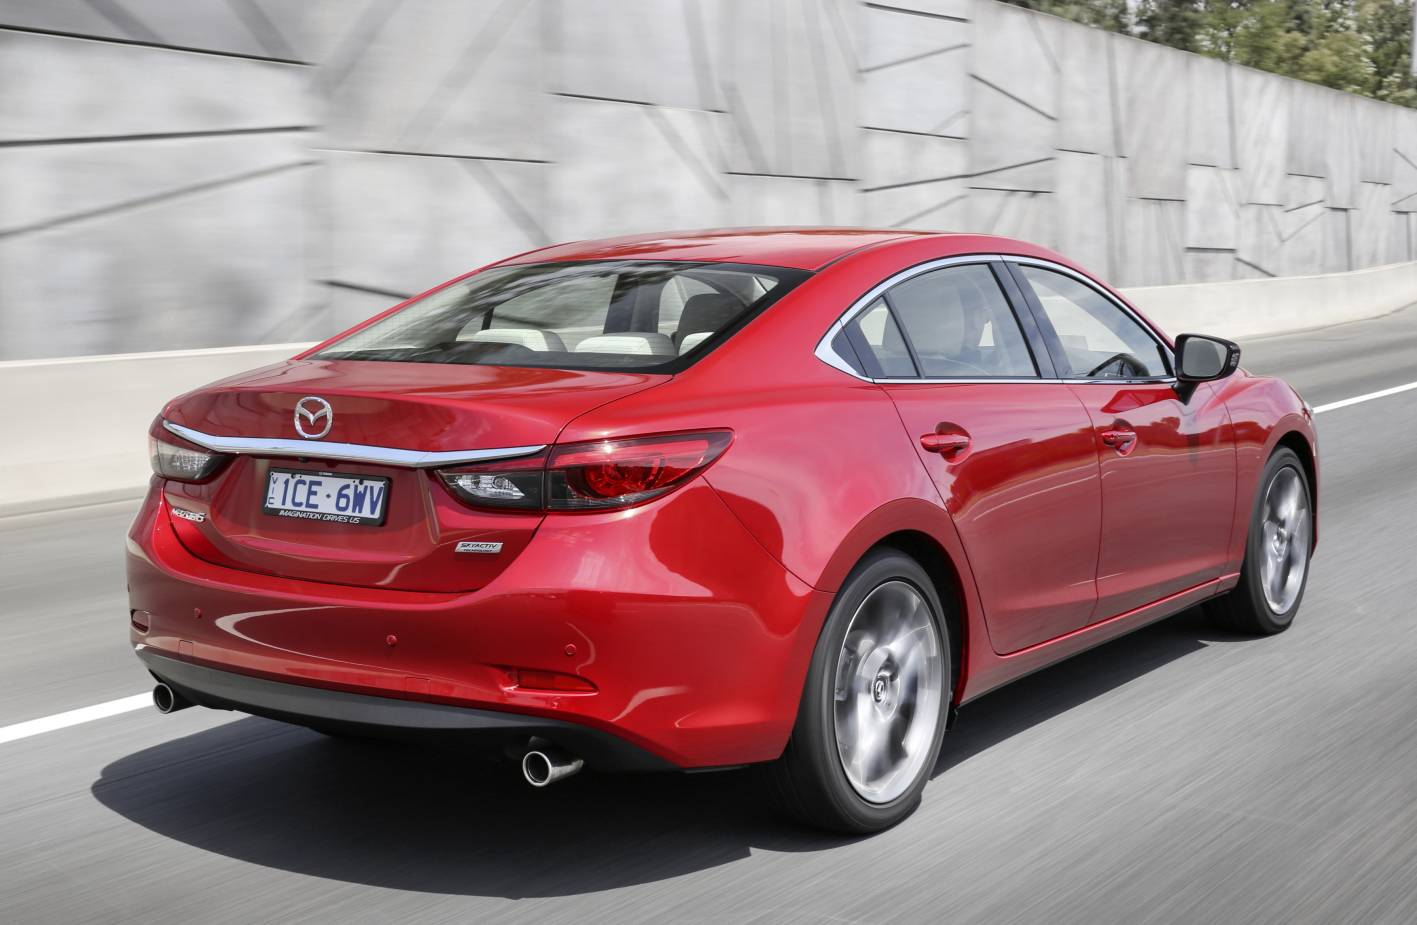 2015 mazda6 update on sale in australia from 32 540 performancedrive. Black Bedroom Furniture Sets. Home Design Ideas